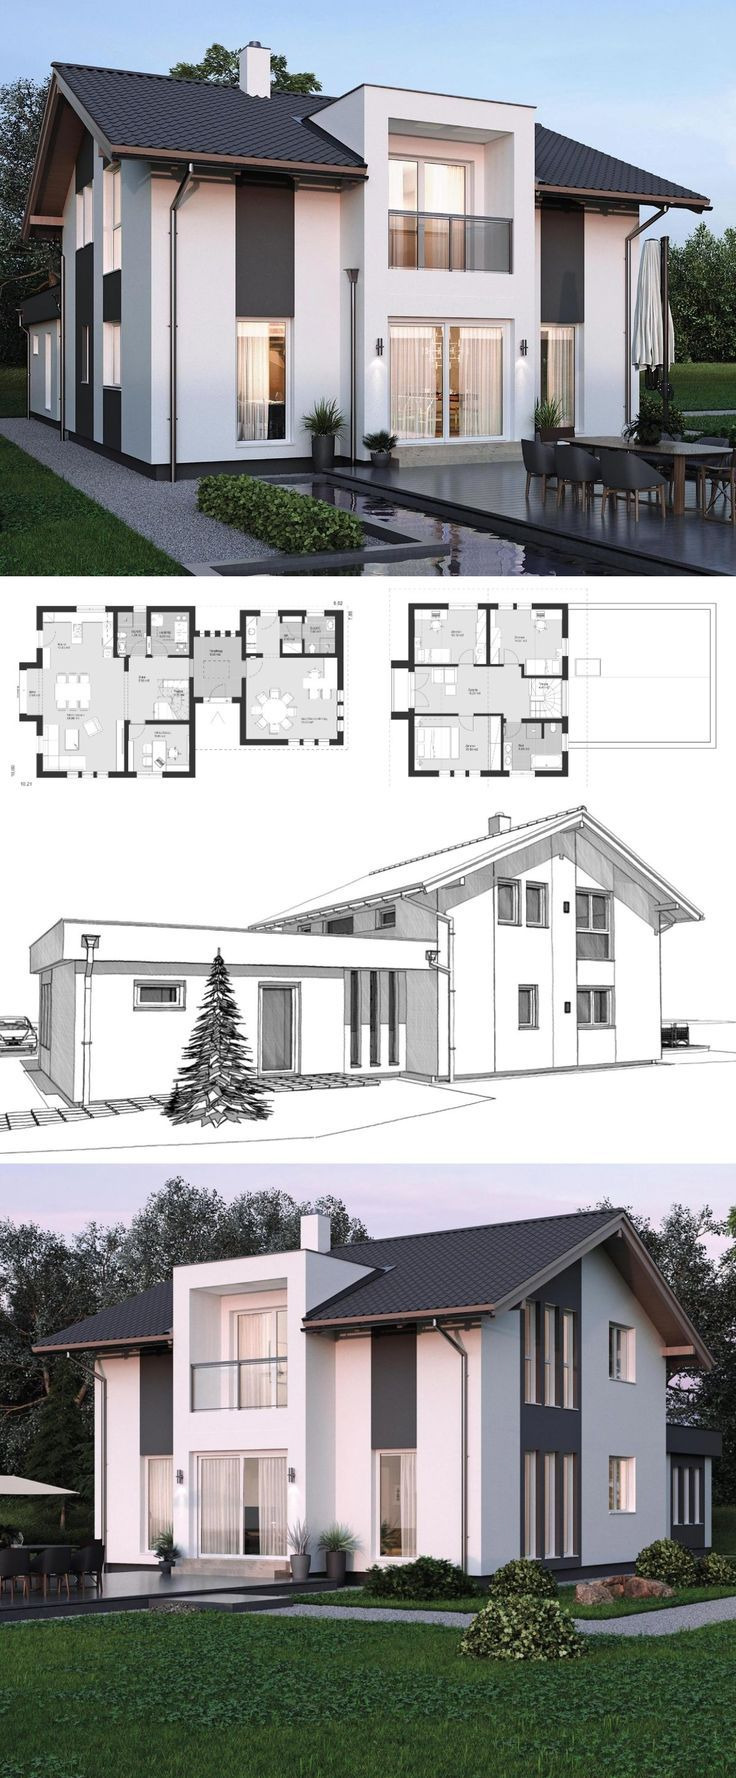 Modern Contemporary House Plans Elegant Modern Contemporary Styles Architecture Design House Plans